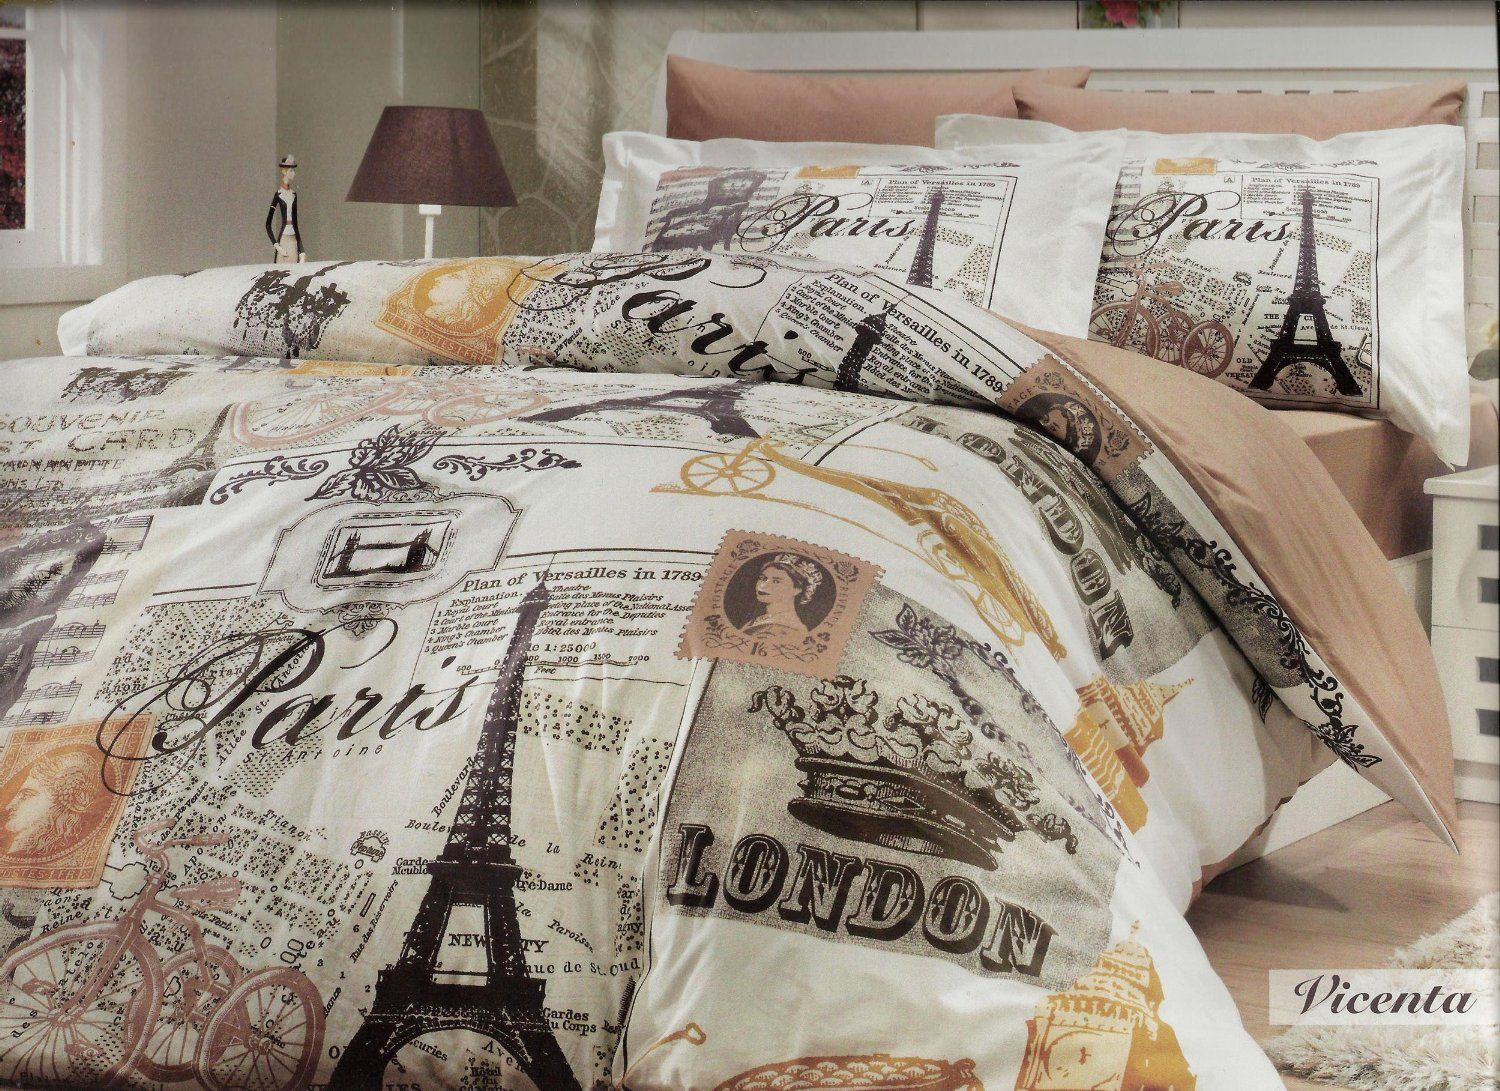 Possible choice for my bedding   Arlene s room   Pinterest   Discover more  ideas about Bedrooms. Possible choice for my bedding   Arlene s room   Pinterest